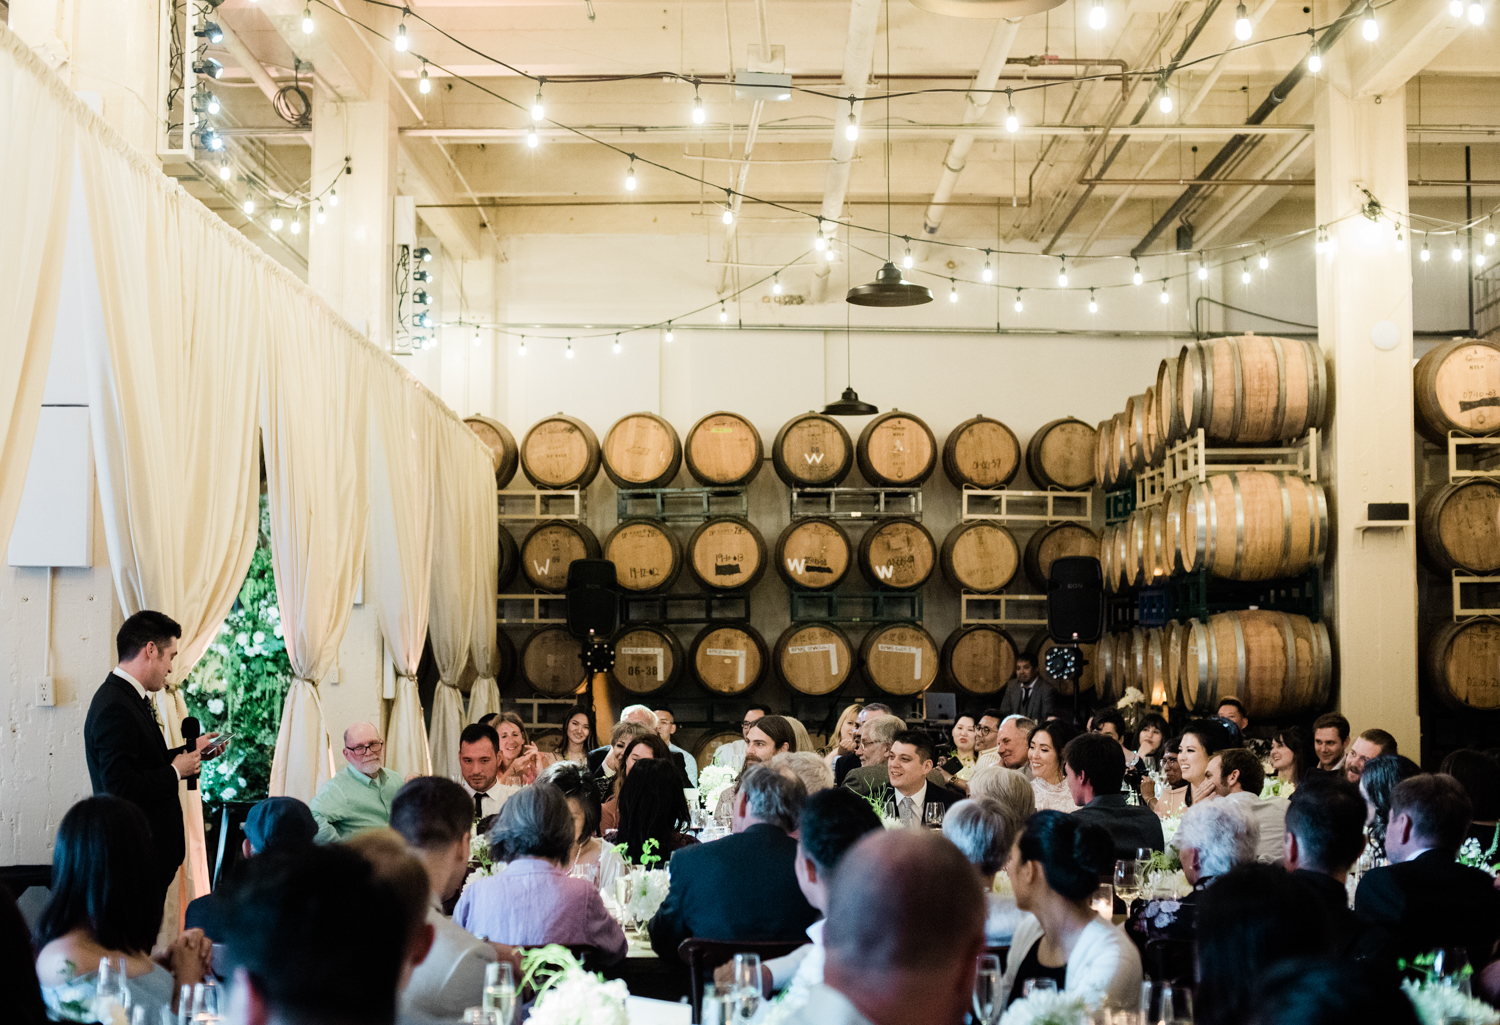 Potrero_Hill_Wine_Works_Wedding_ChristinaRichards_089.jpg